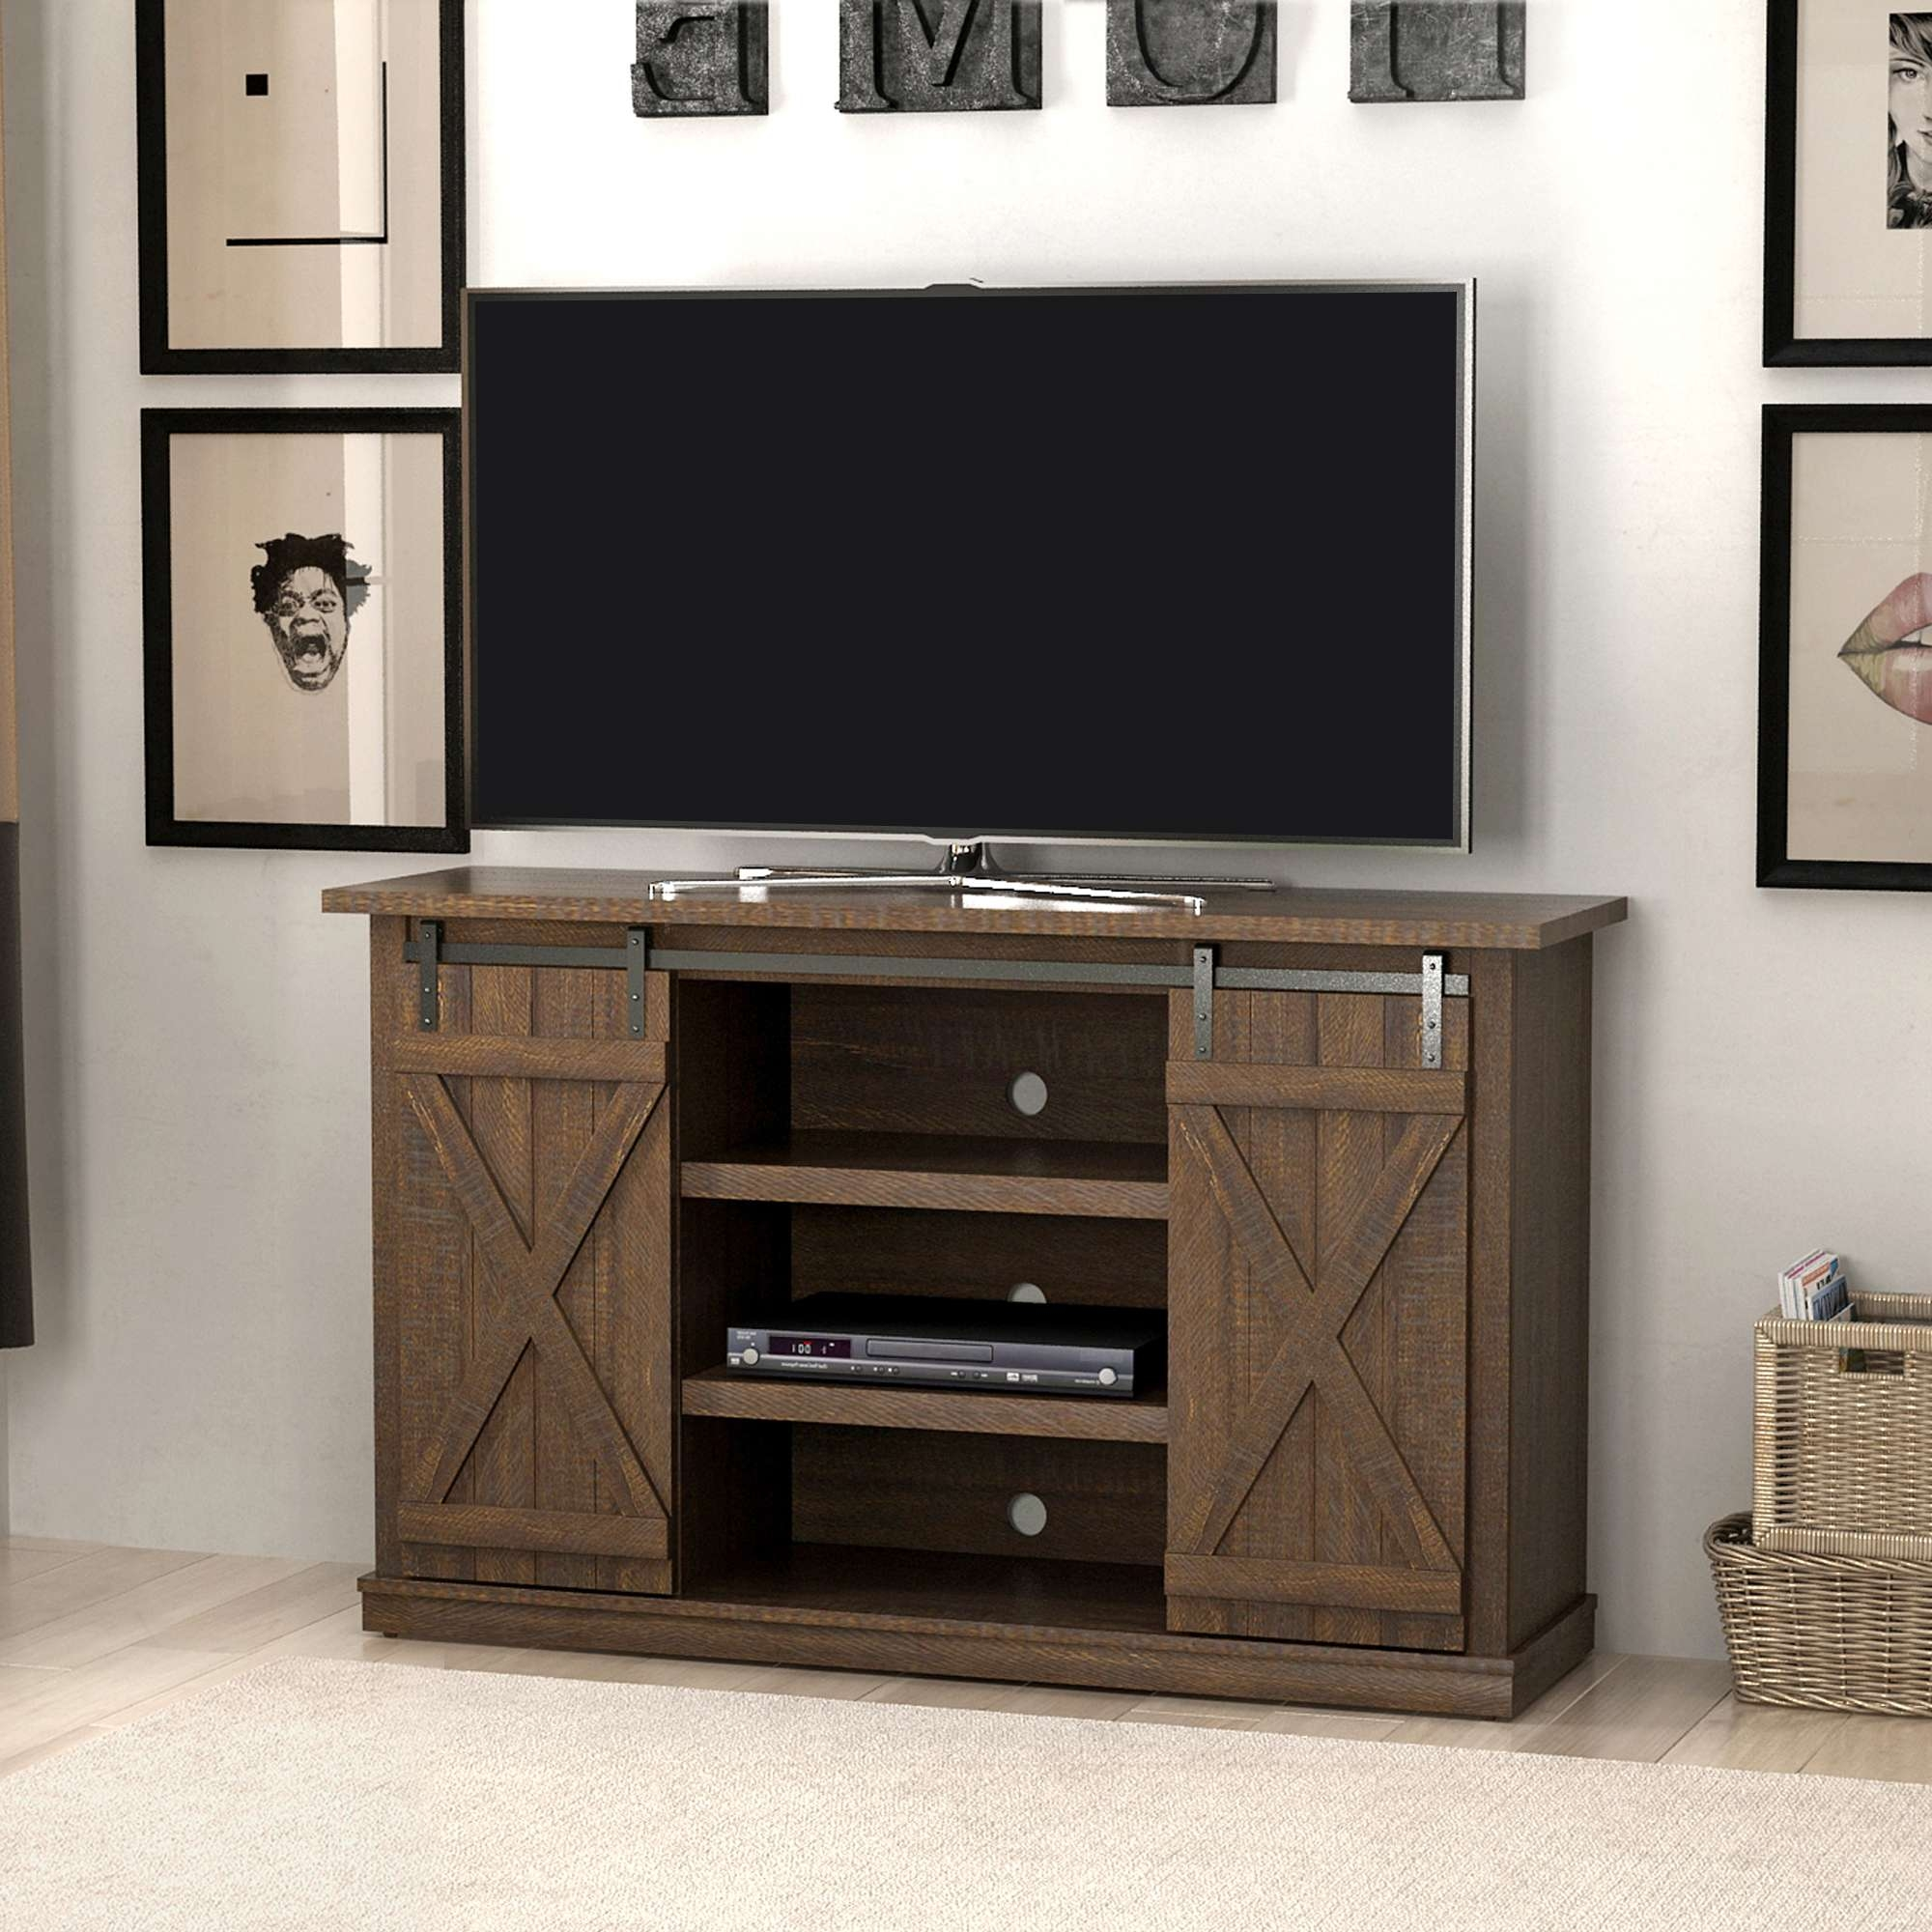 Tv Stands – Walmart Inside White Tv Stands For Flat Screens (View 11 of 15)